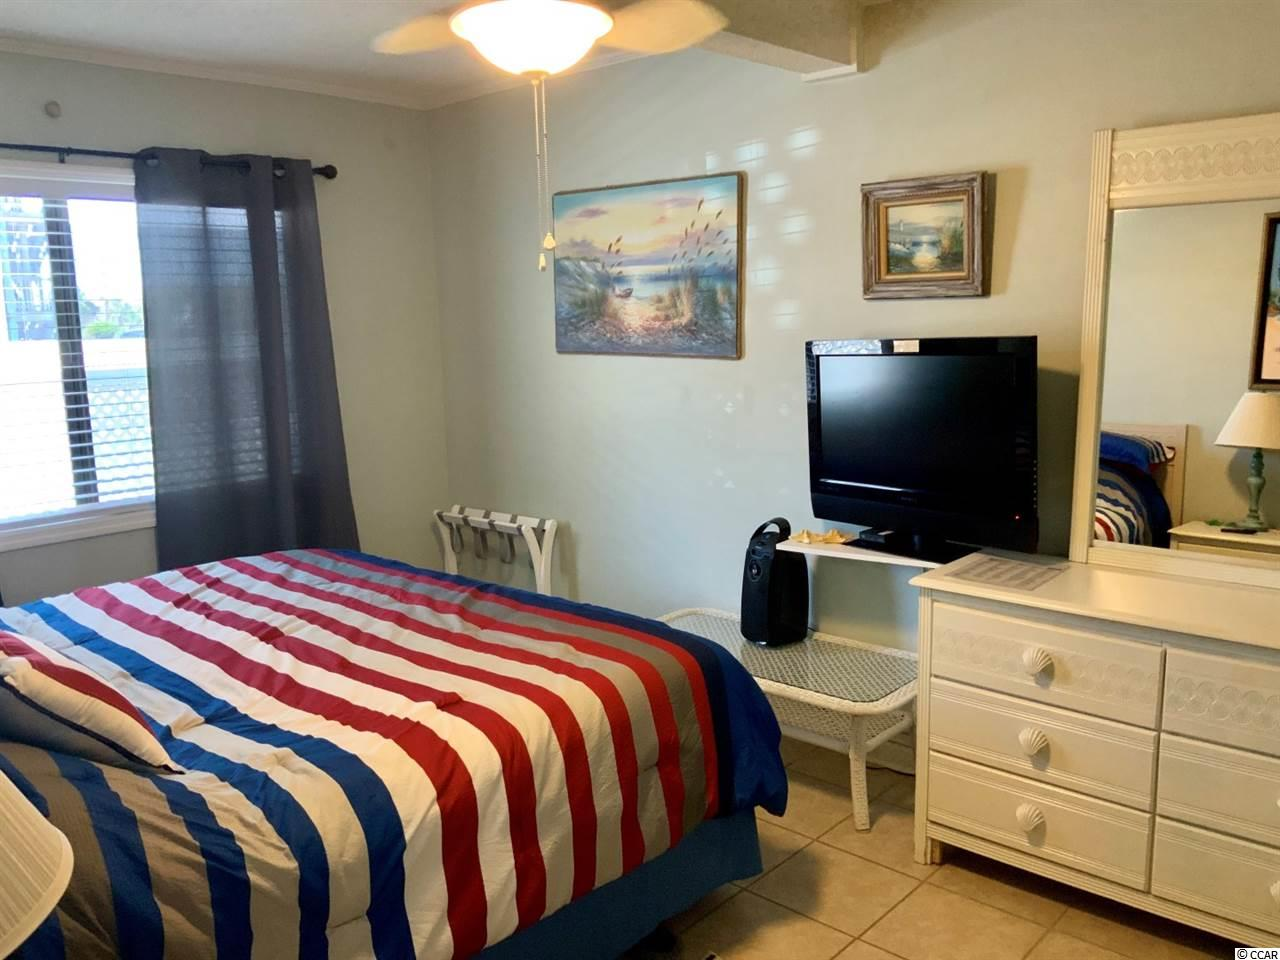 This property available at the Grand Strand Resort IV in North Myrtle Beach – Real Estate